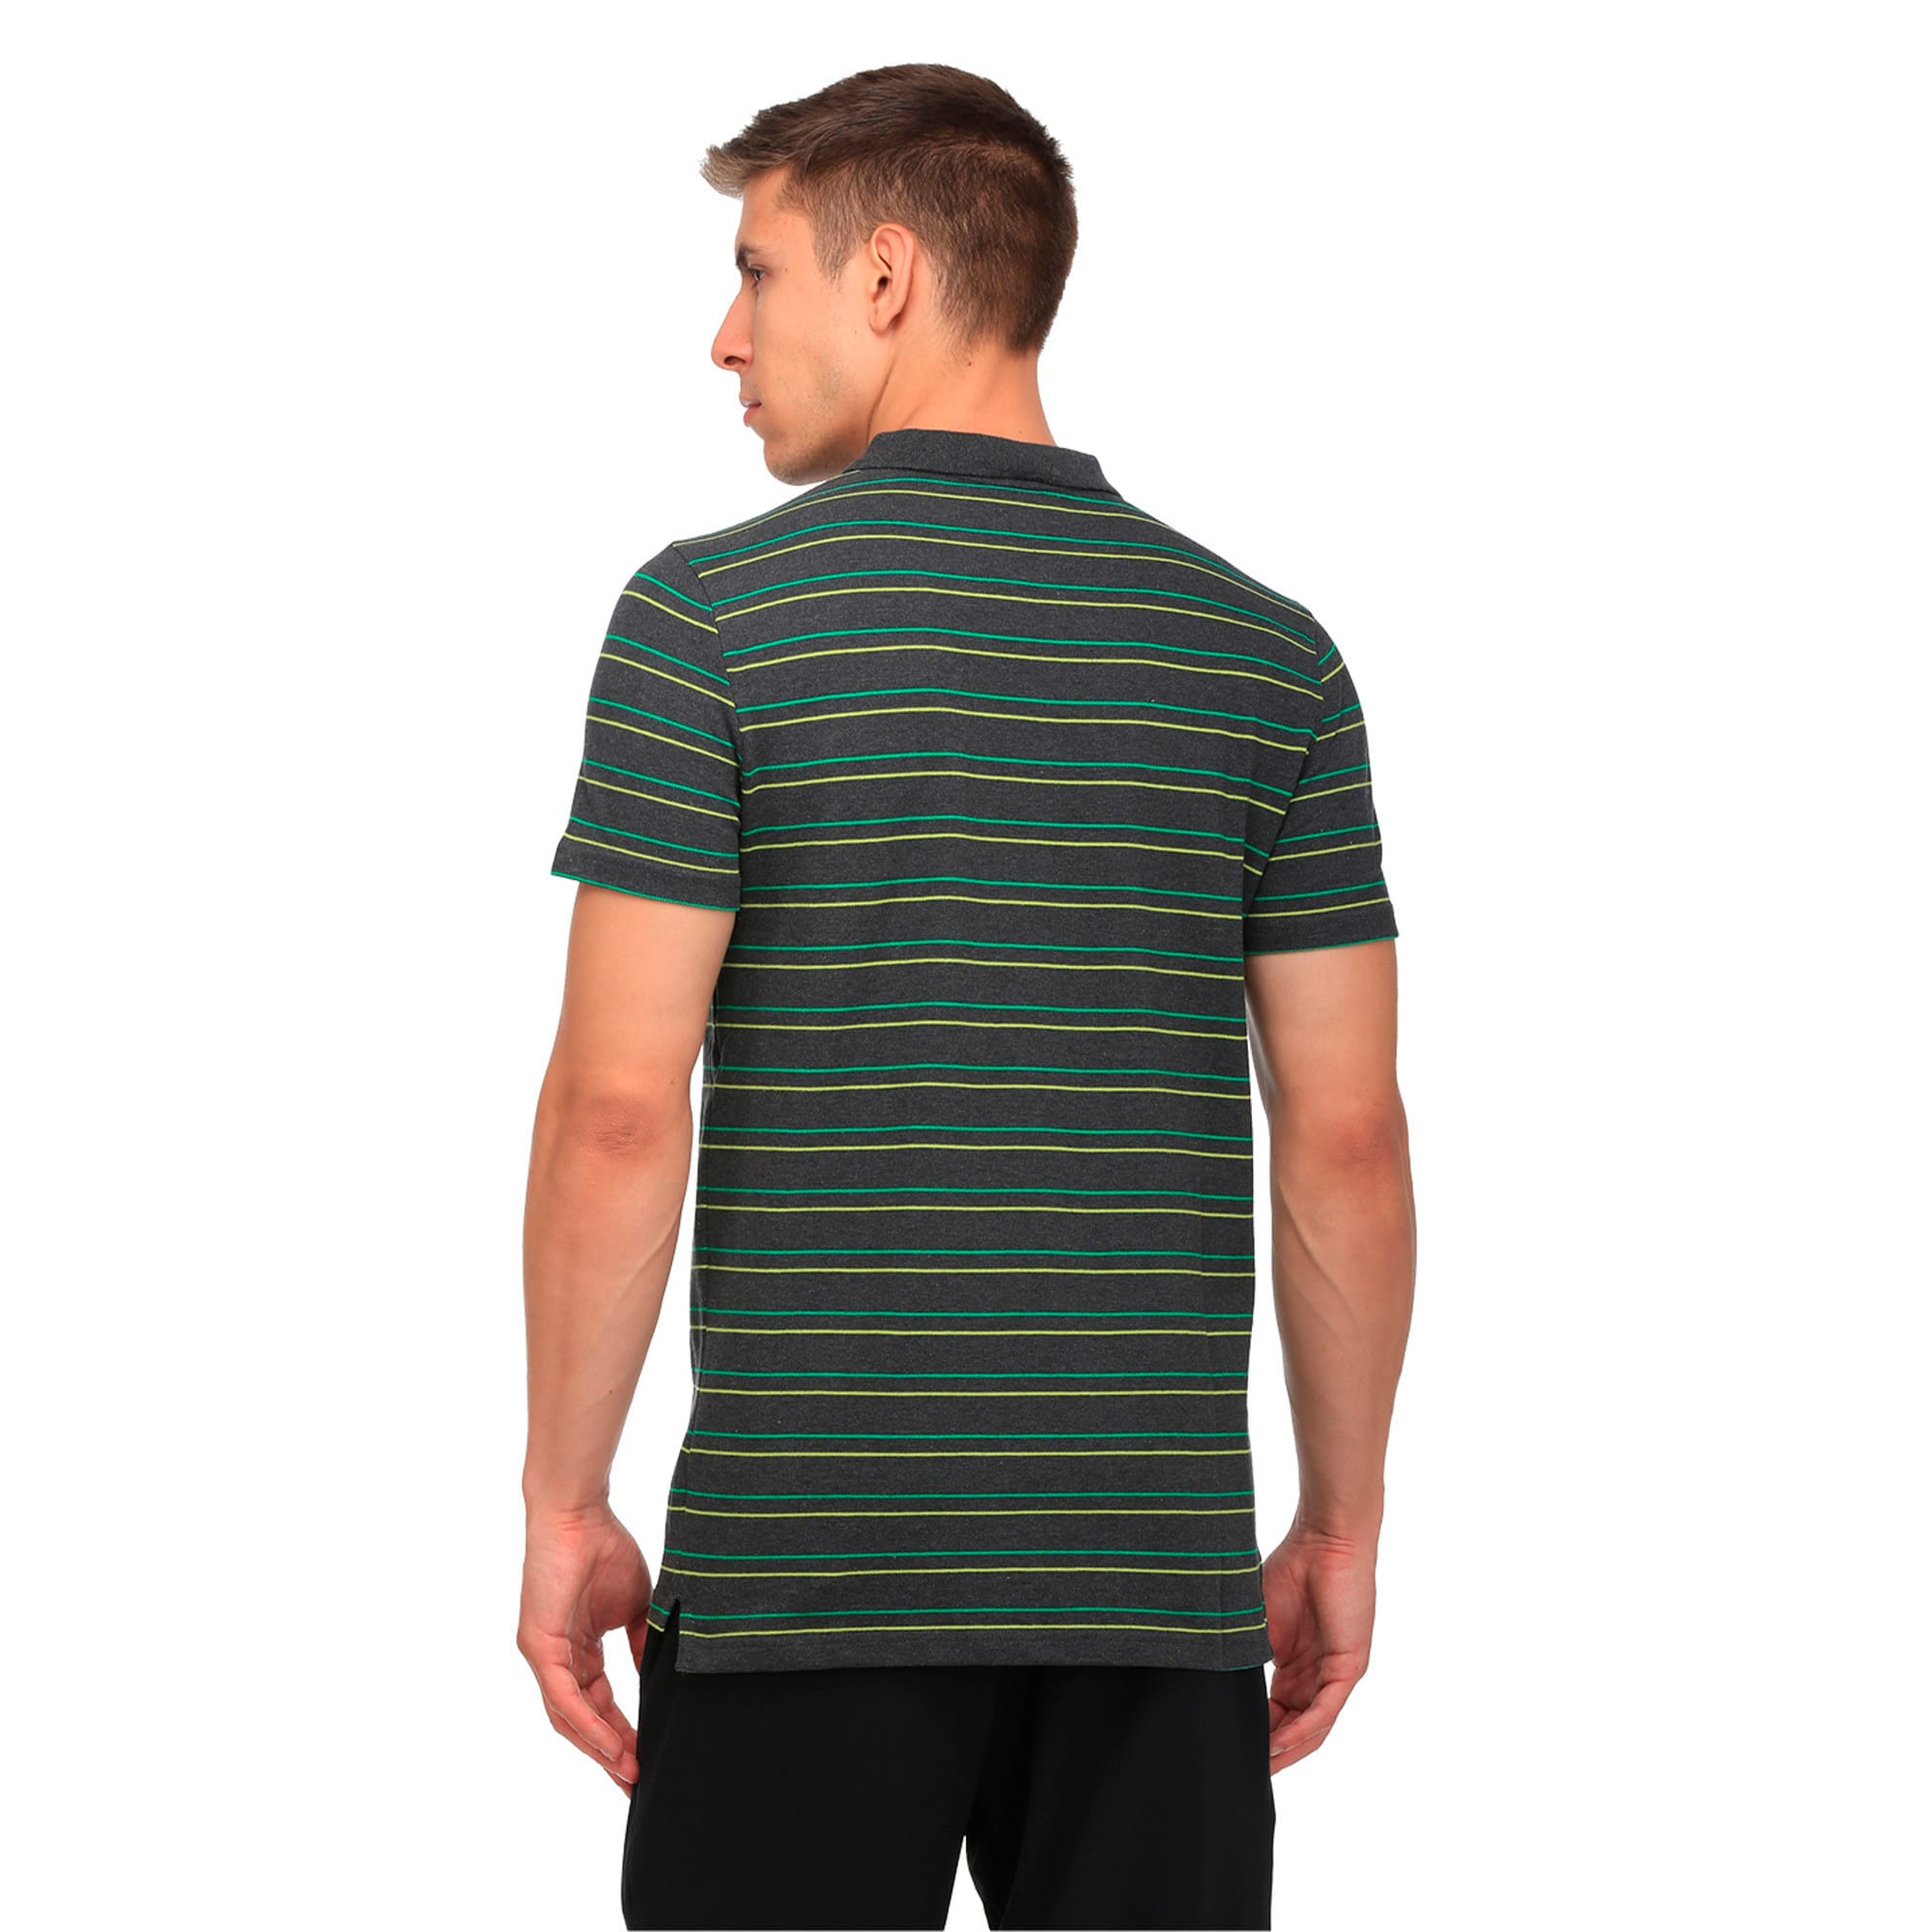 Thumbnail 3 of Sports Stripe Pique Polo, Dark Gray Heather, medium-IND